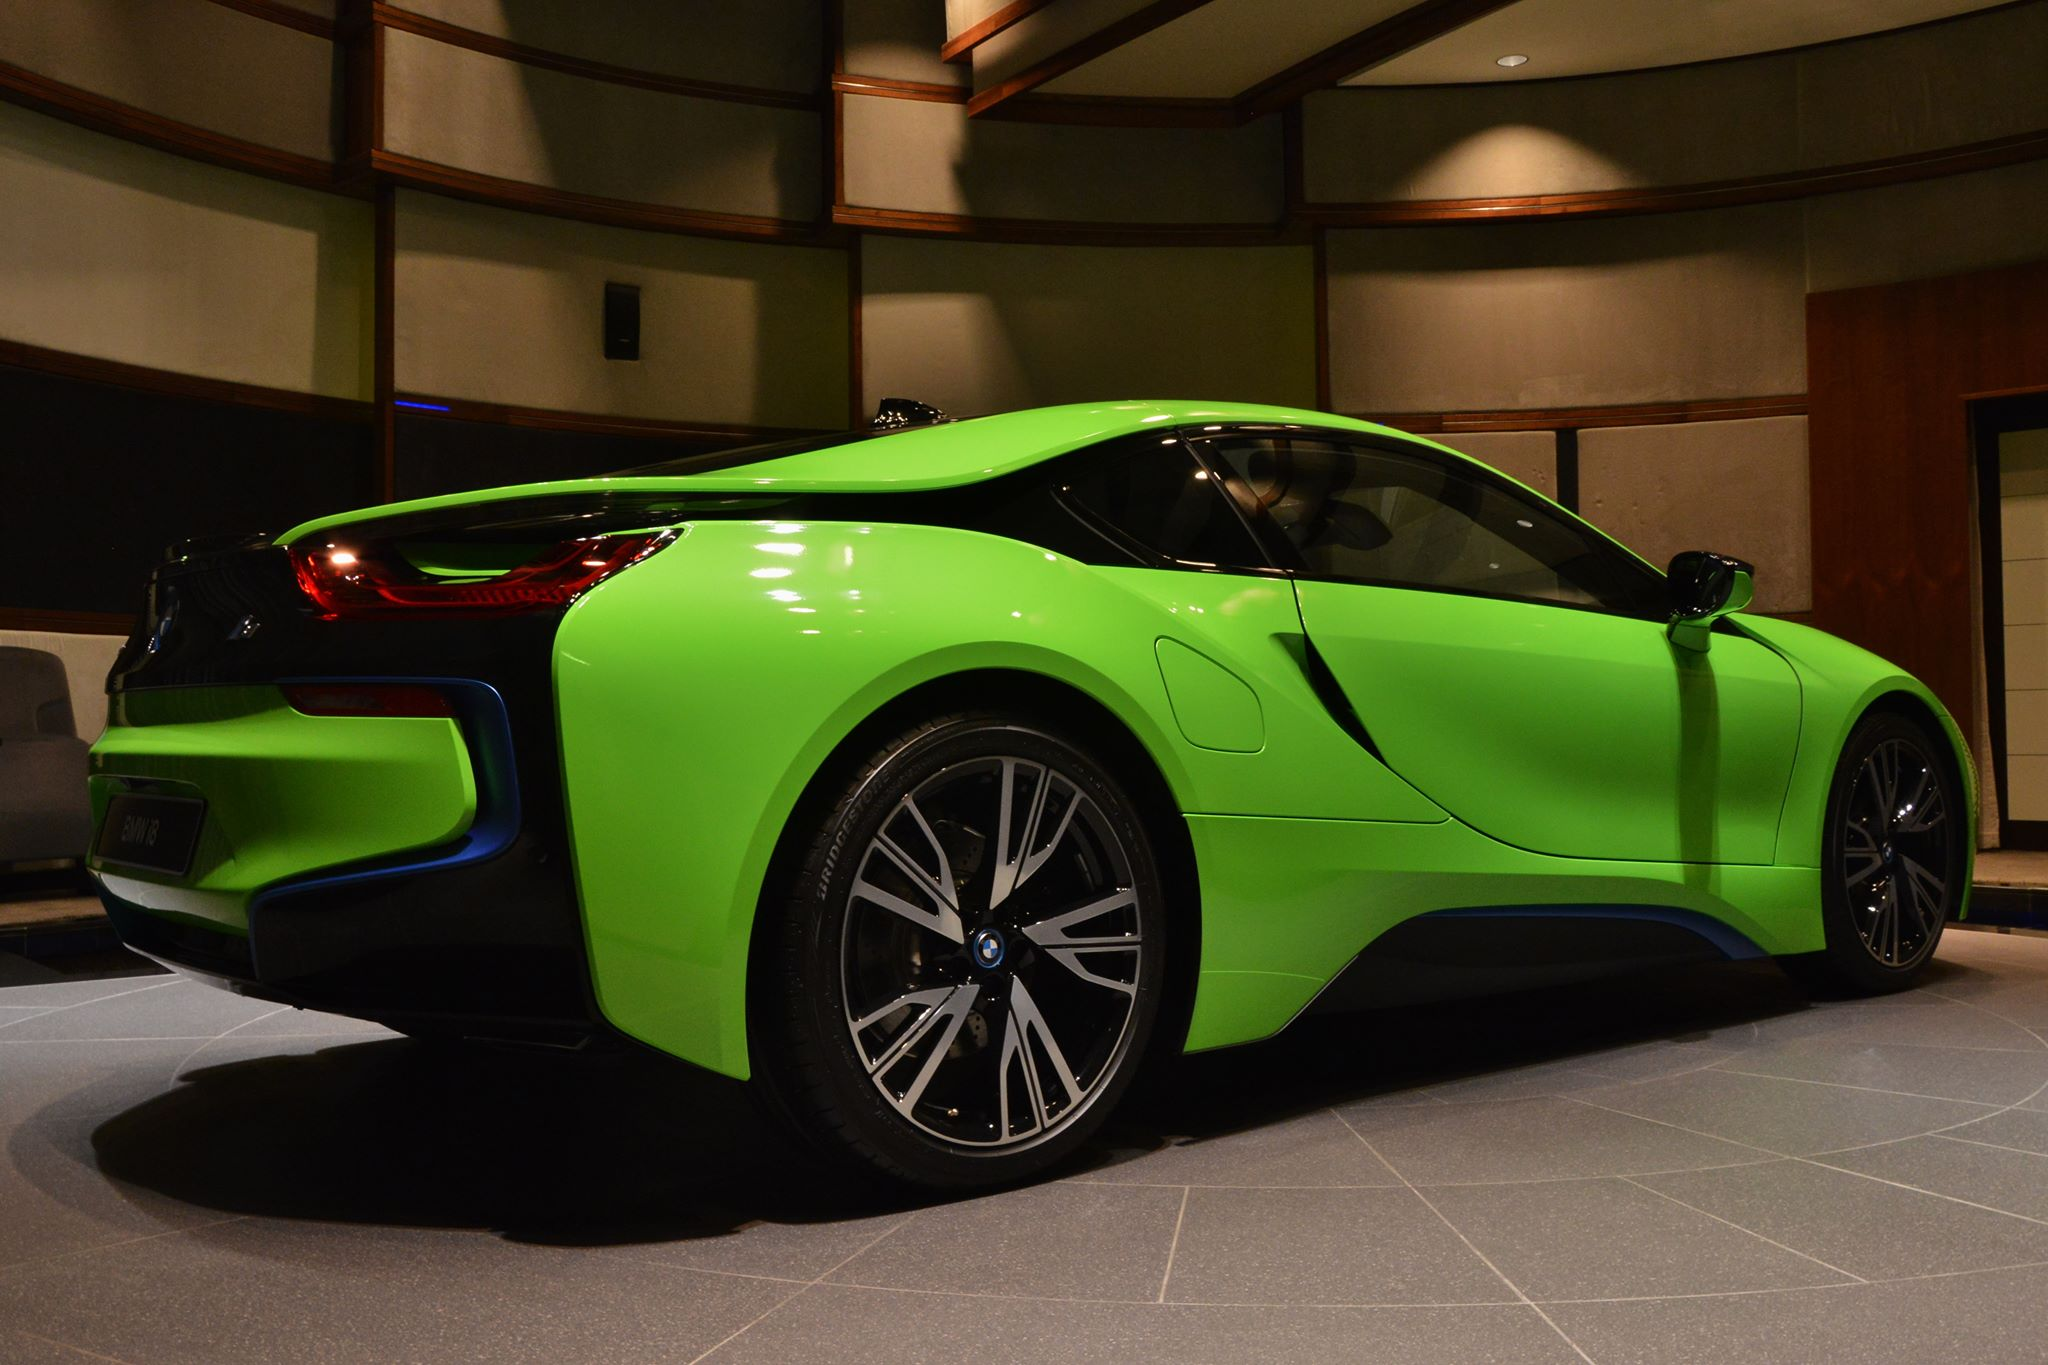 Bmw I8 In Neon Green